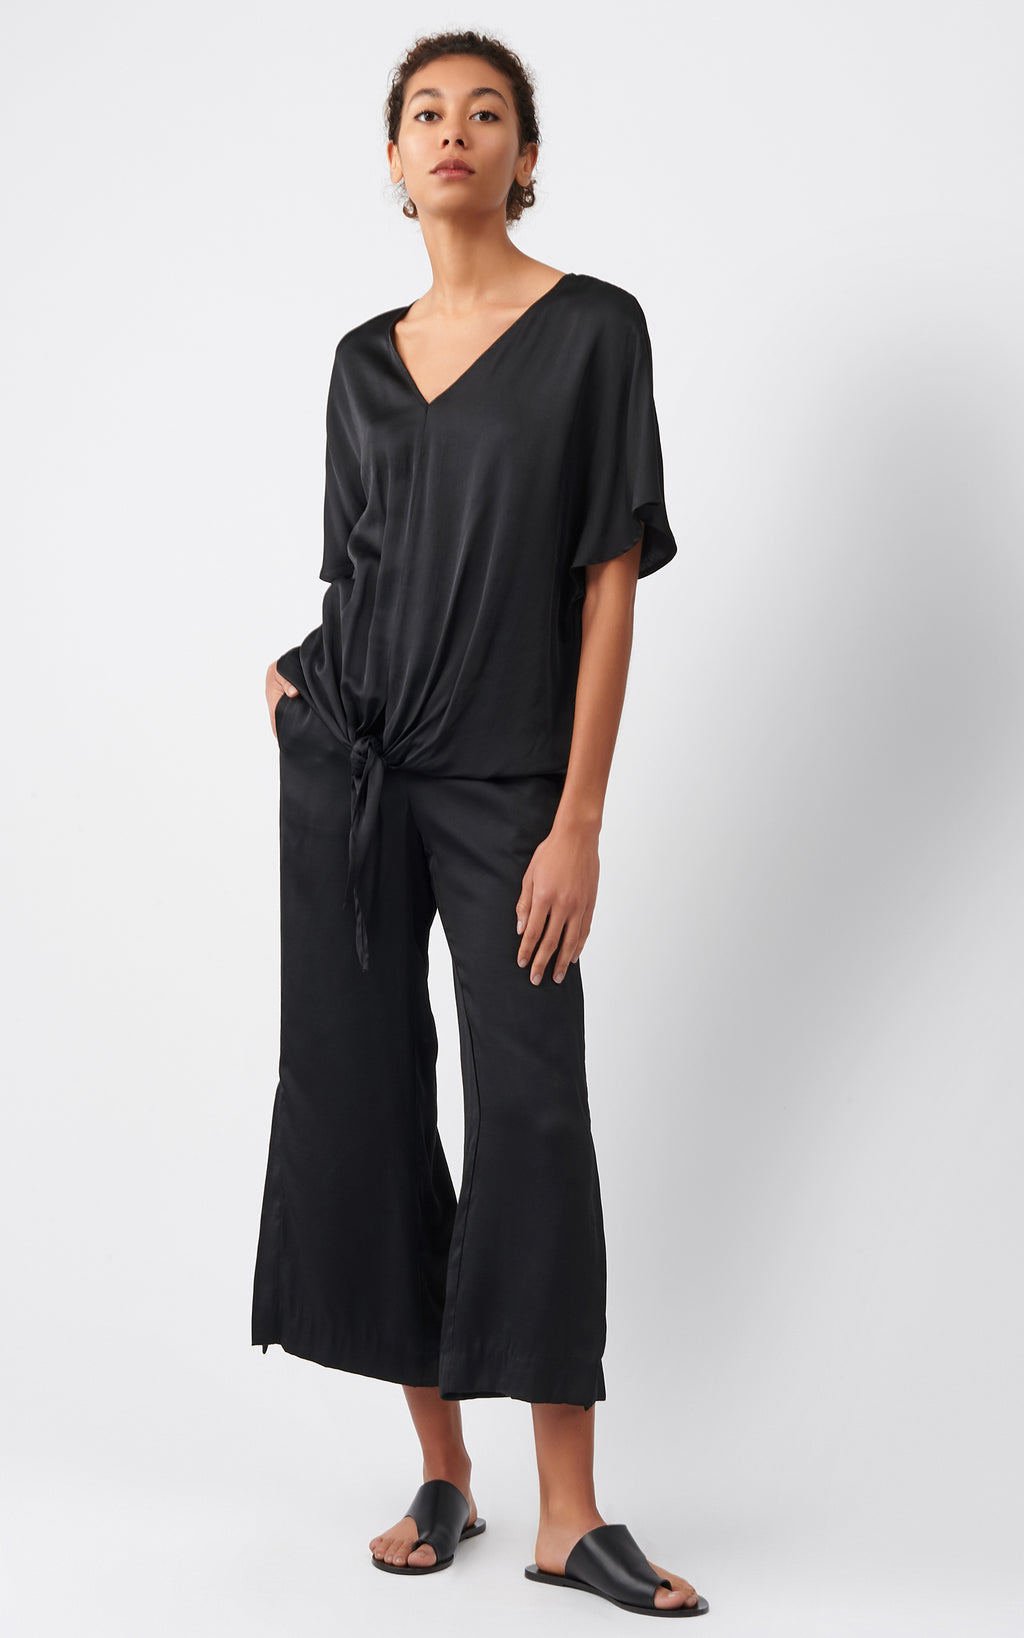 TIE FRONT TOP - BLACK SATIN